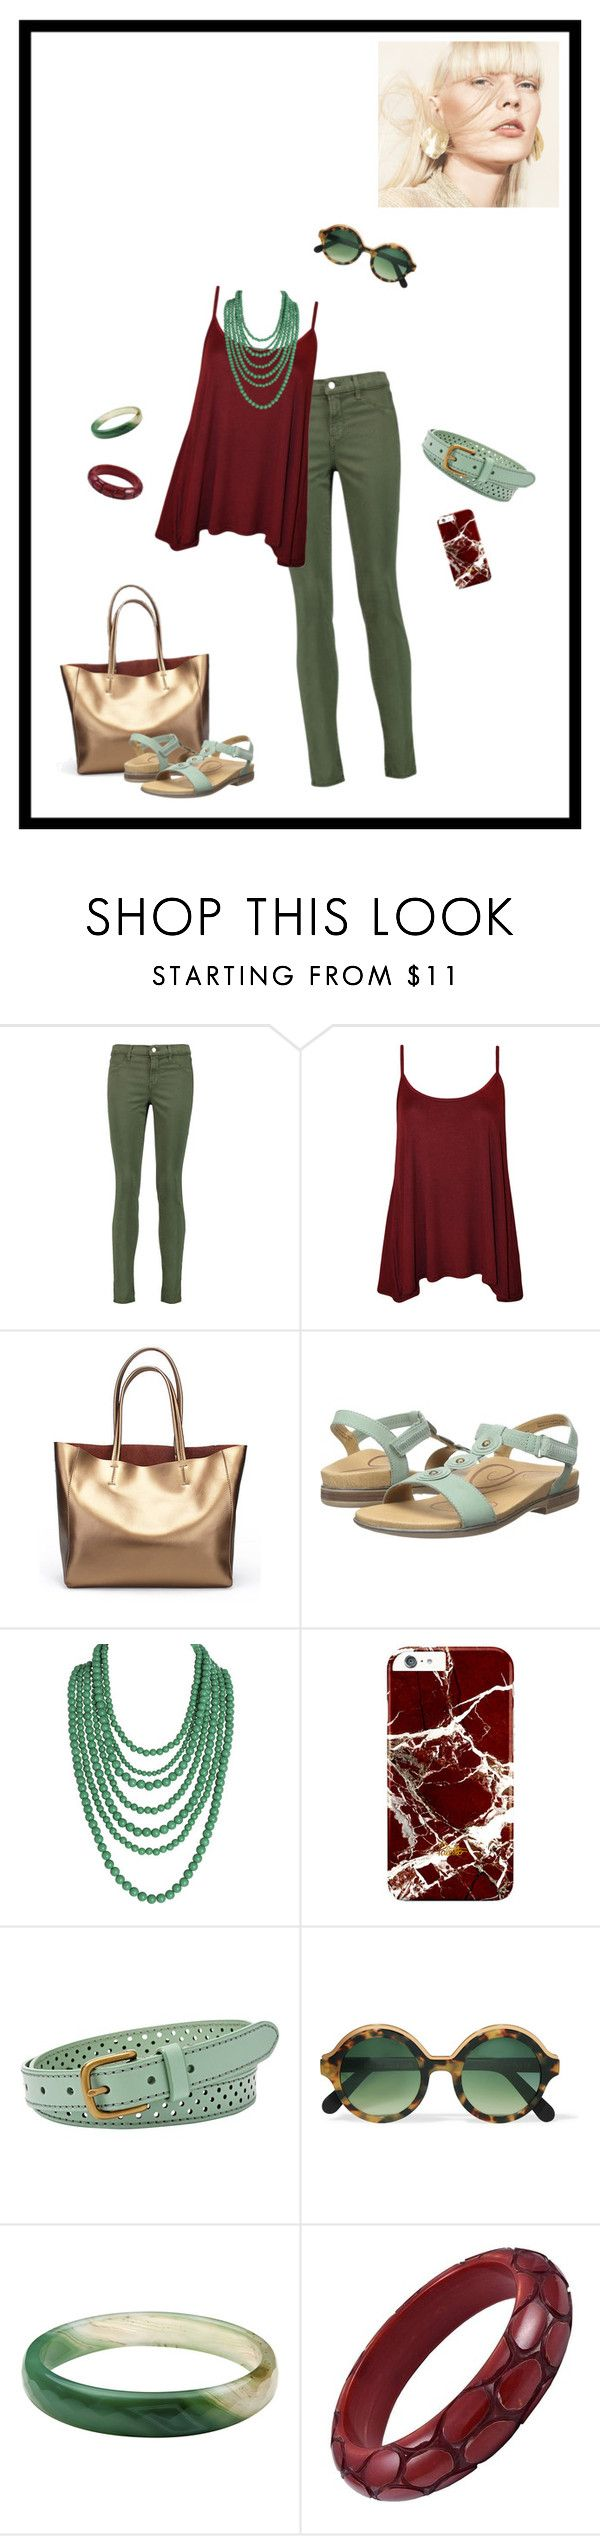 """red, green, and gold"" by whimsical-angst ❤ liked on Polyvore featuring J Brand, WearAll, Aetrex, Humble Chic, FOSSIL, Cutler and Gross, simple, colorful, women and fashionset"